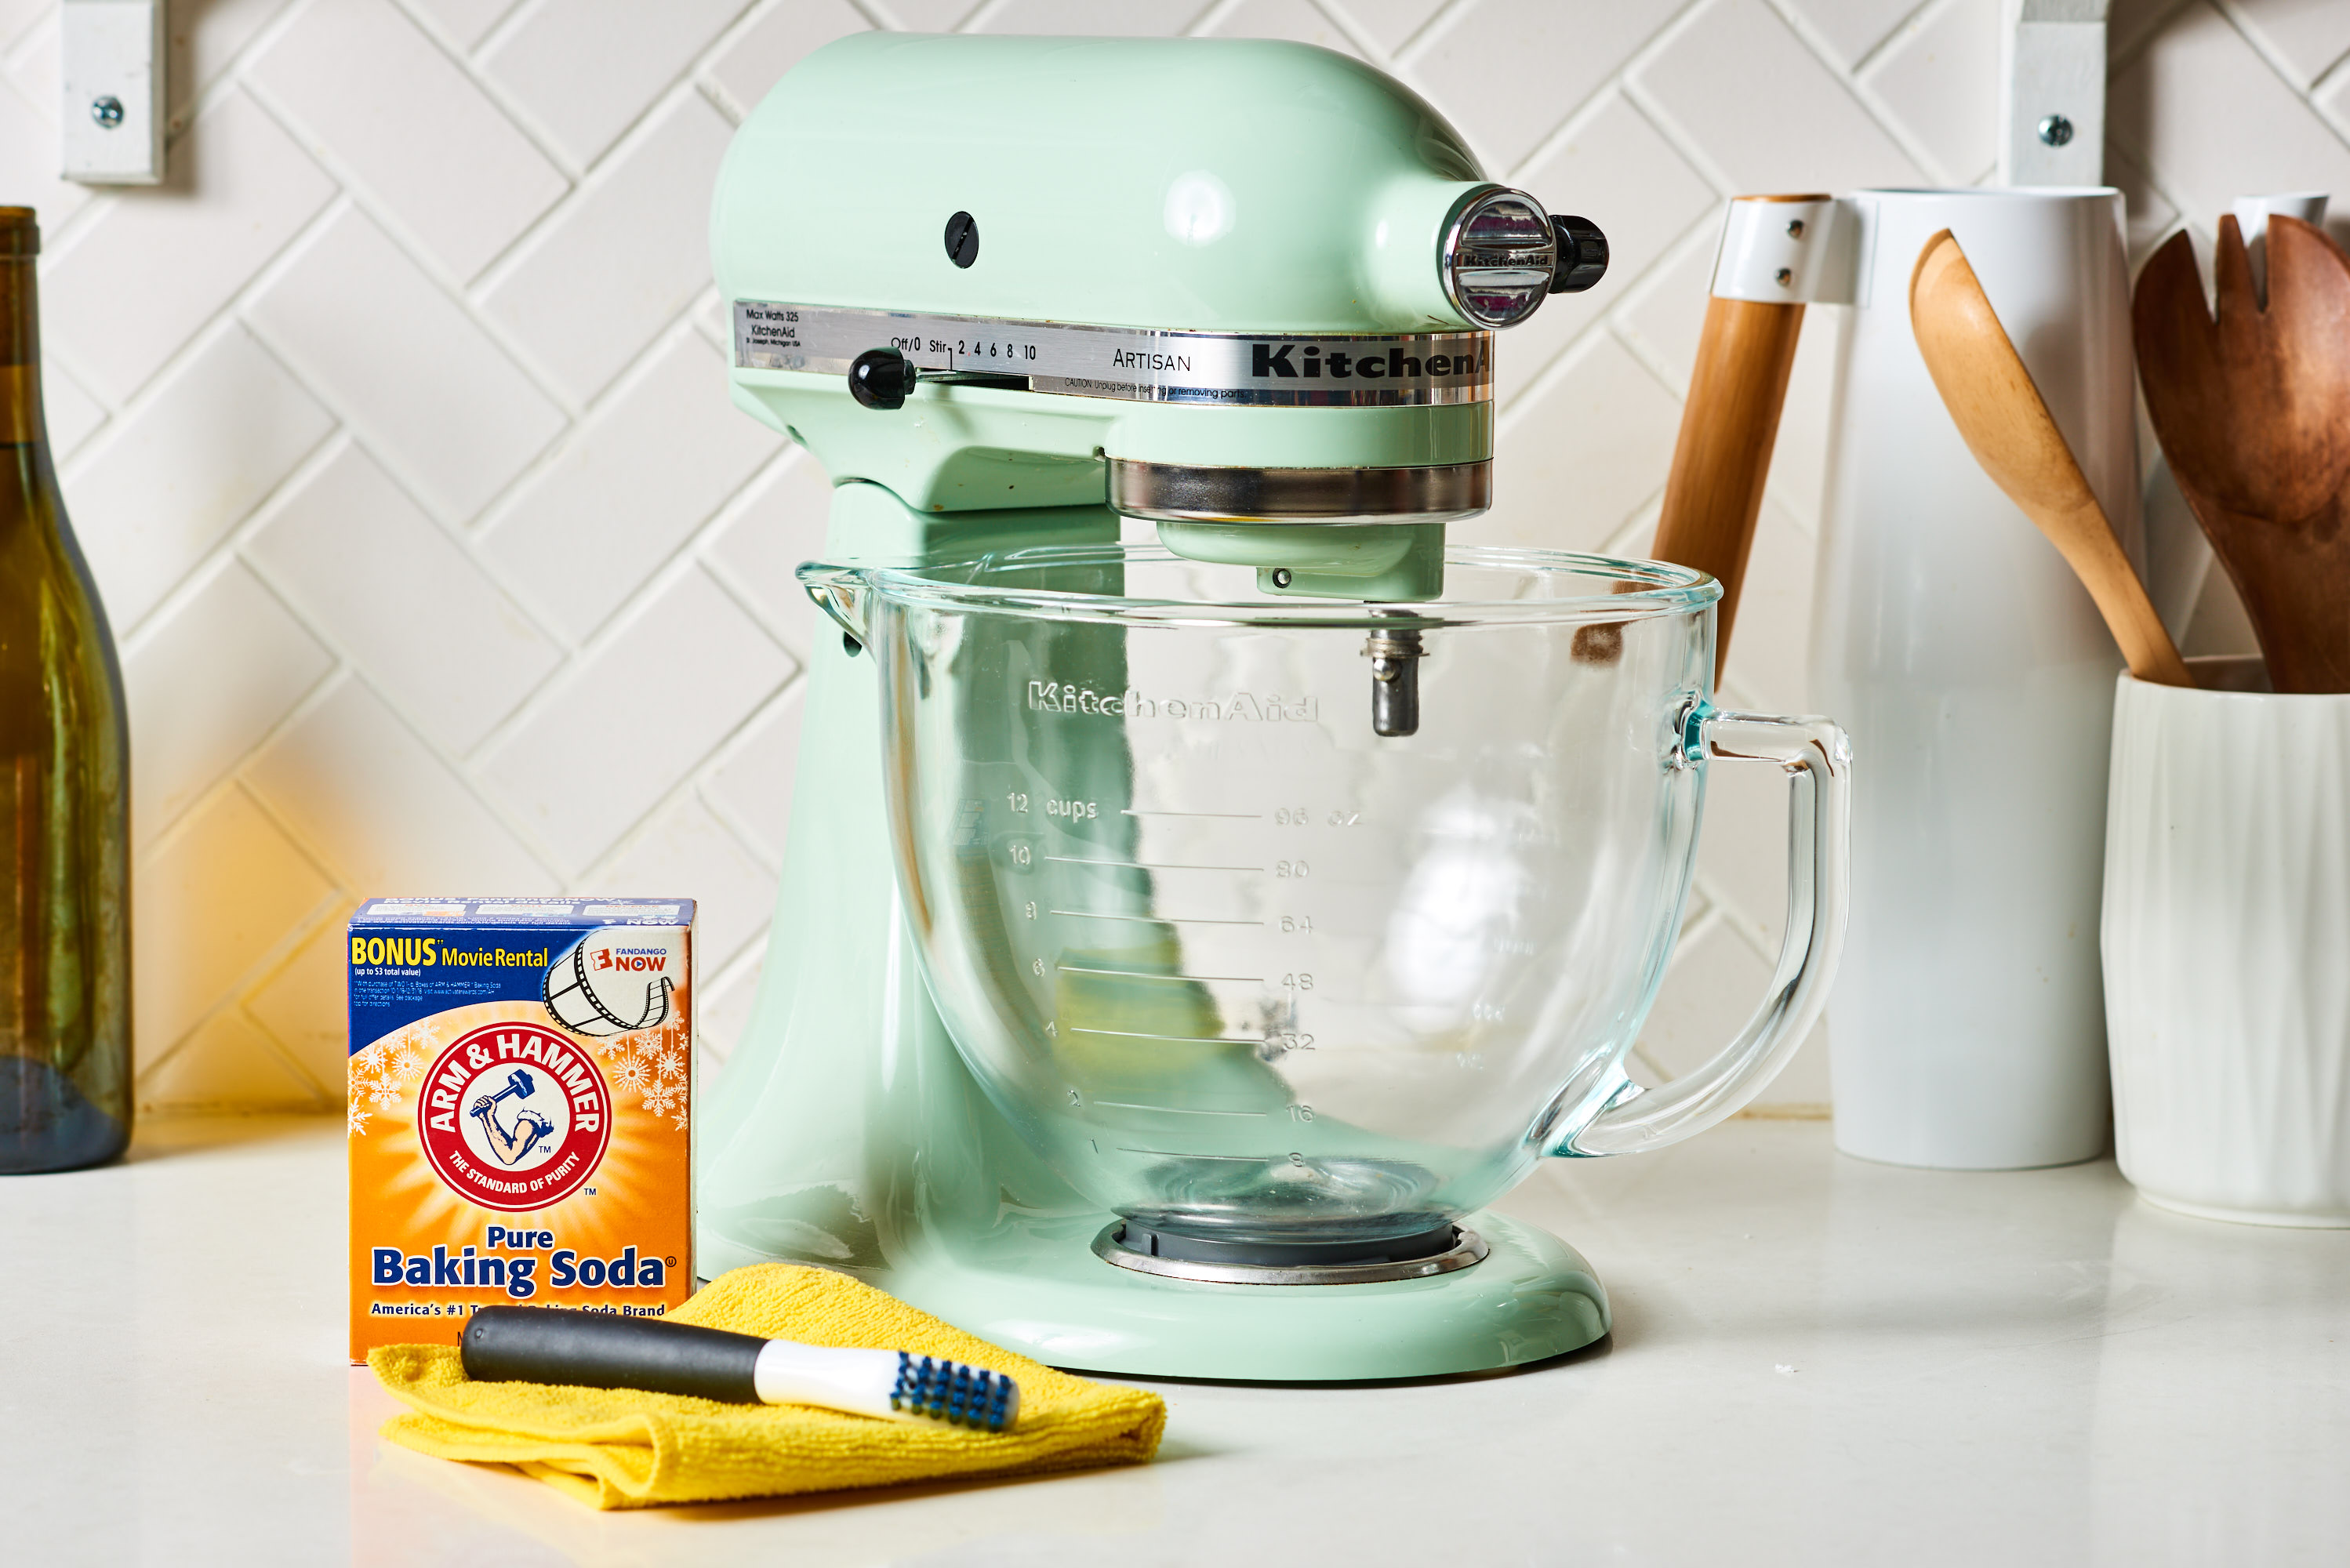 f5152745c4b6 How To Clean a Stand Mixer | Kitchn